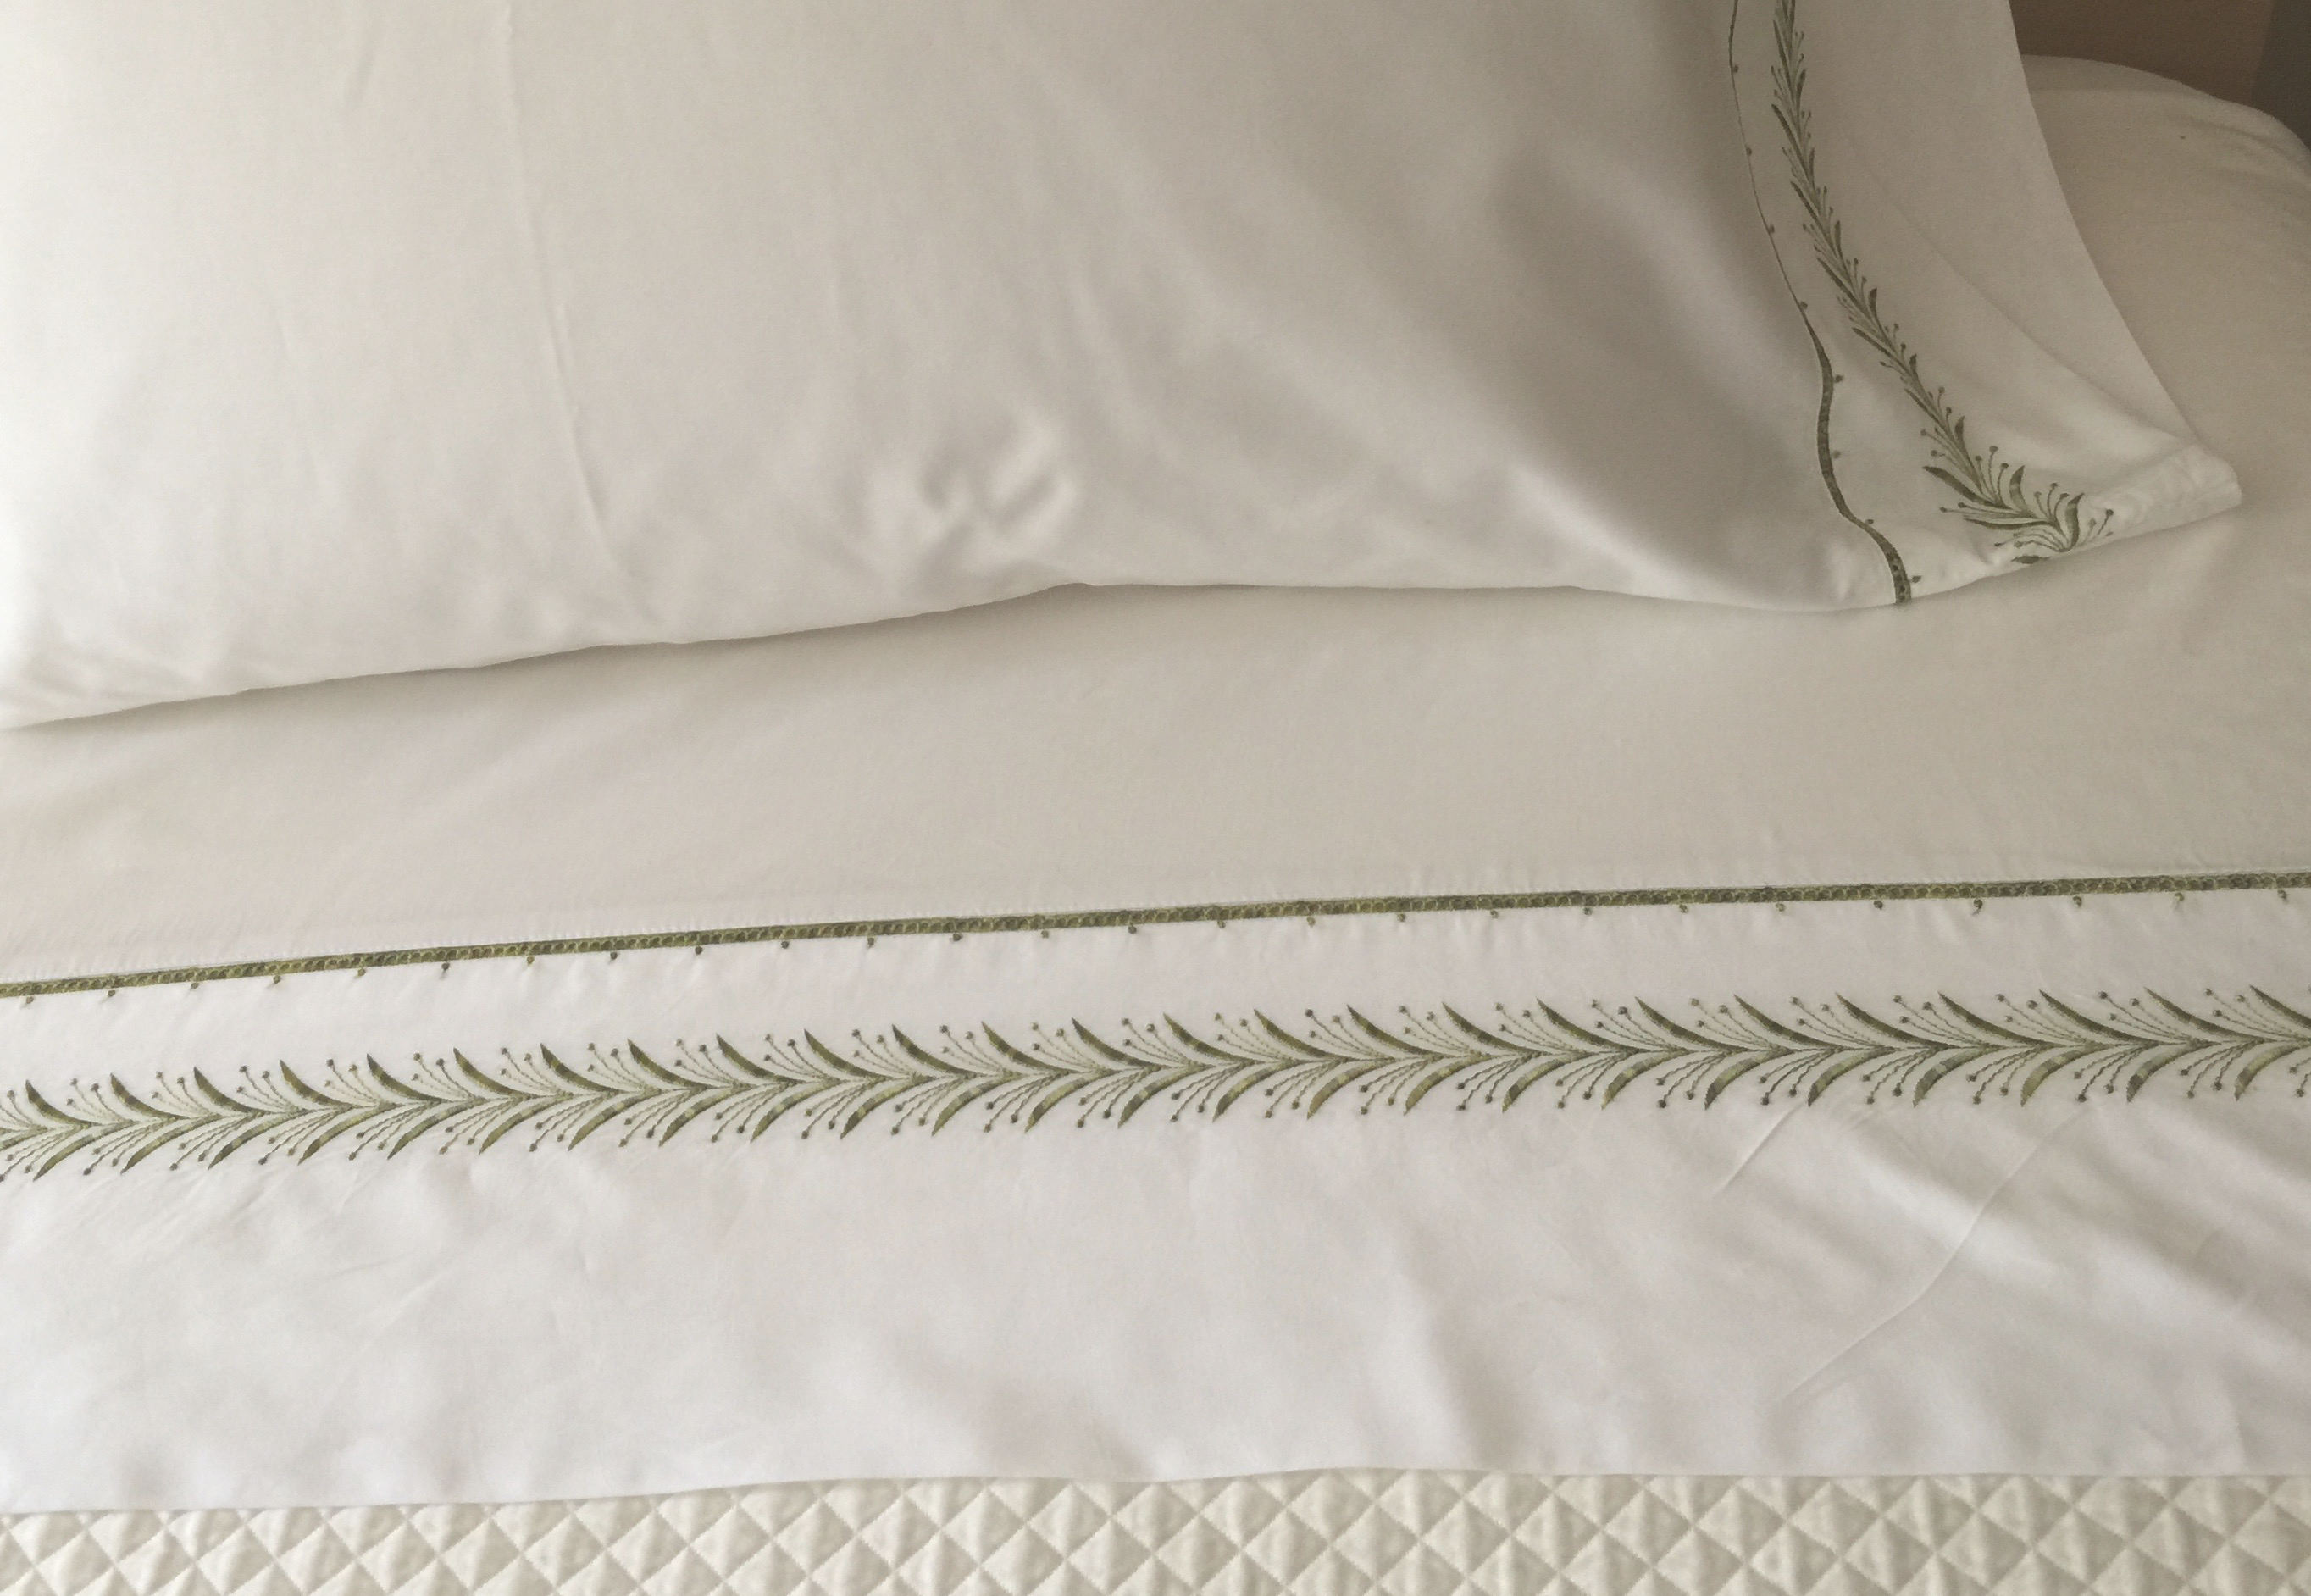 Stunning buying bed sheets perfectlinens second skin fern green thread count sateen king